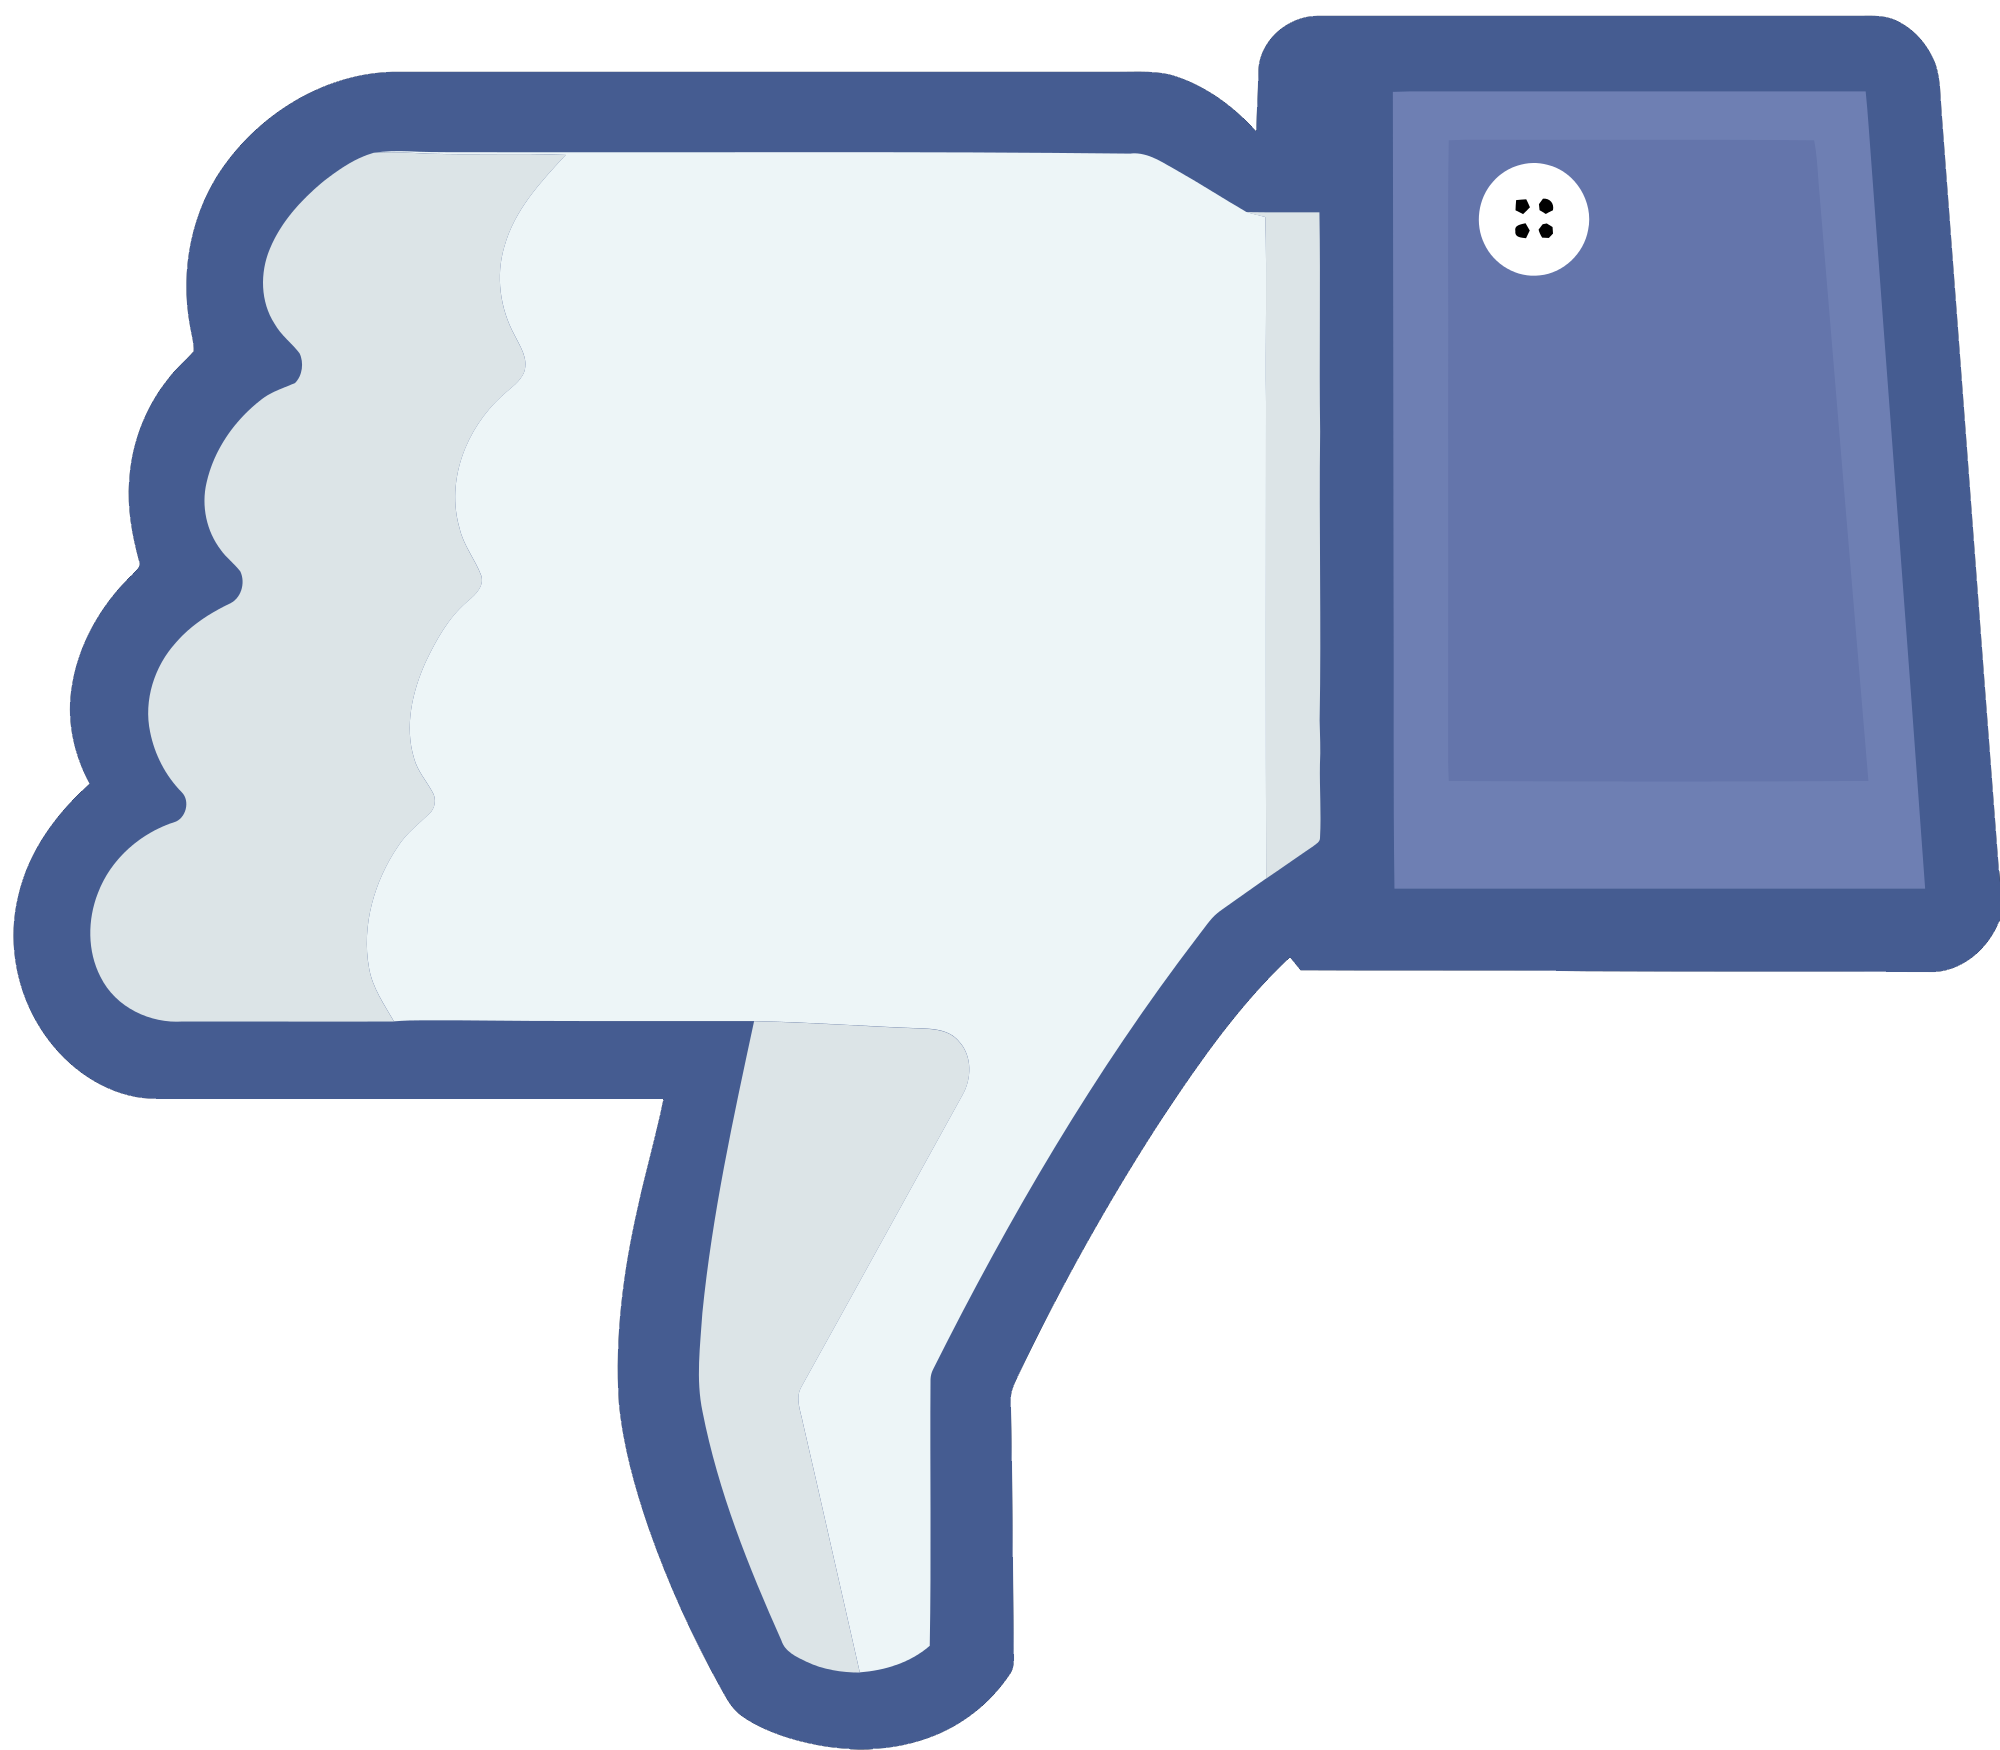 Dislike PNG images free download.